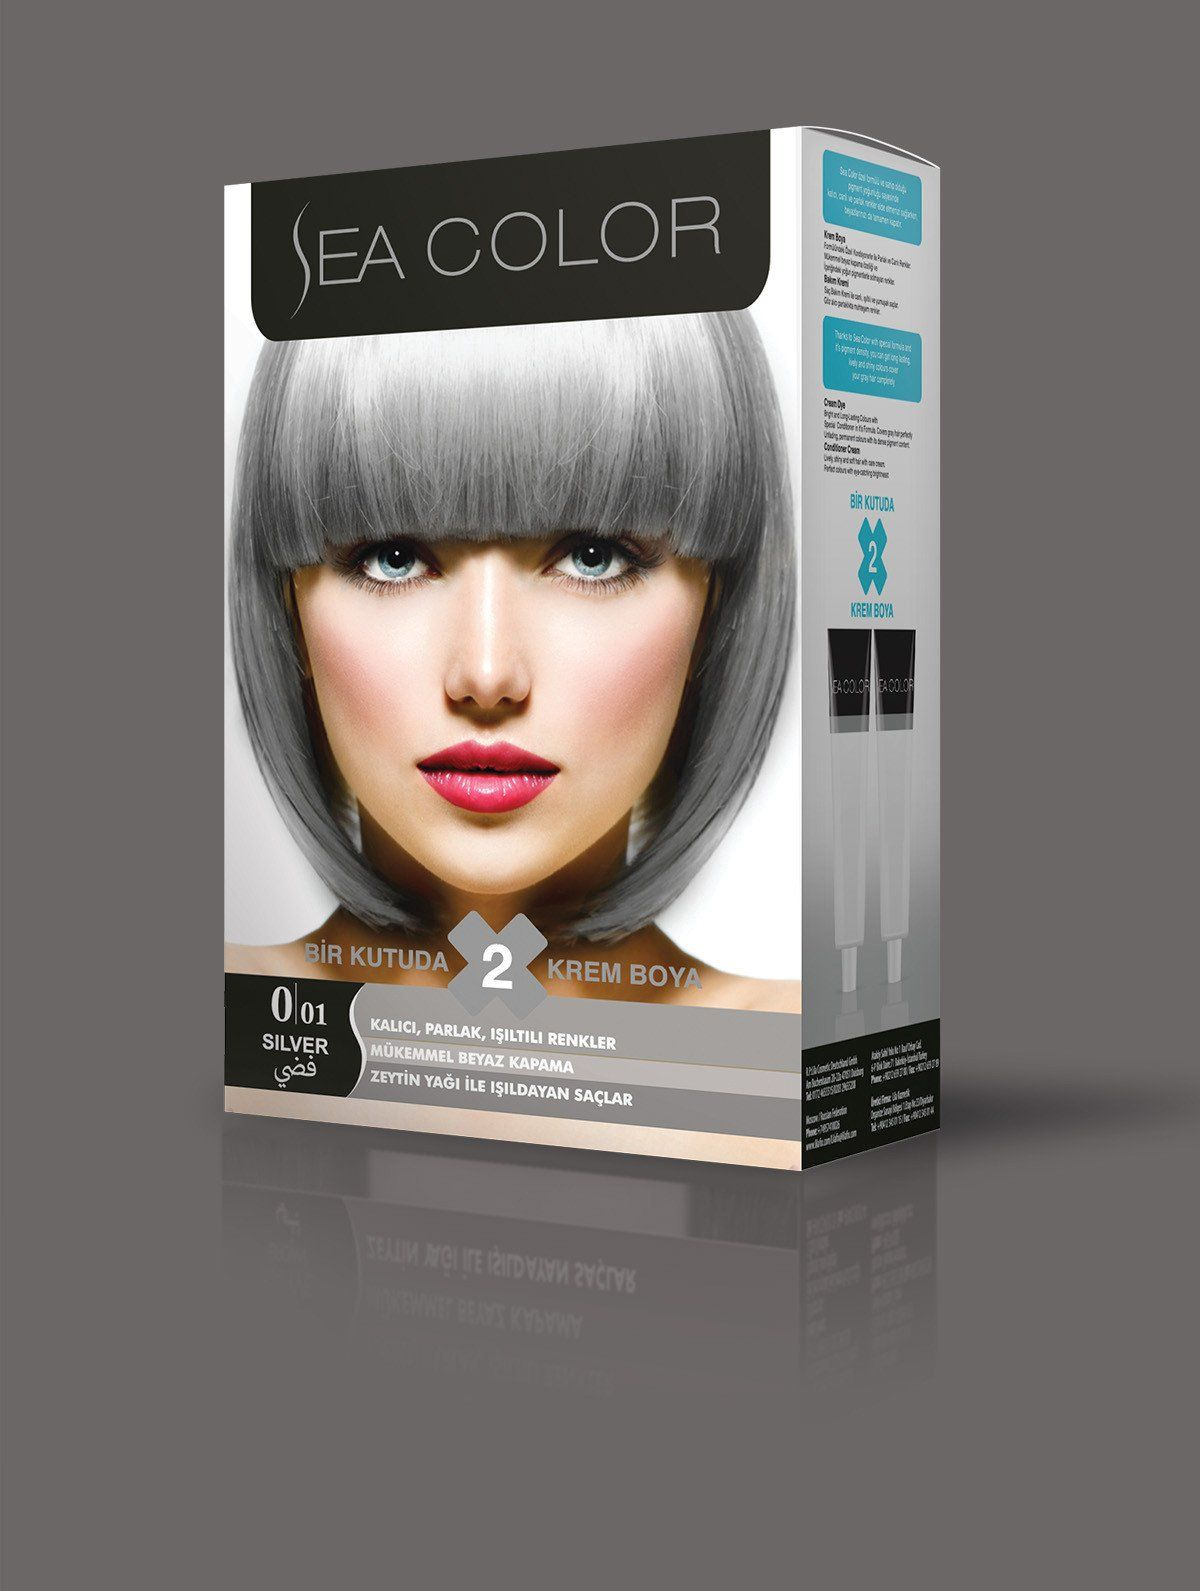 Silver Hair Coloring Products Beautiful Sea Color Lila